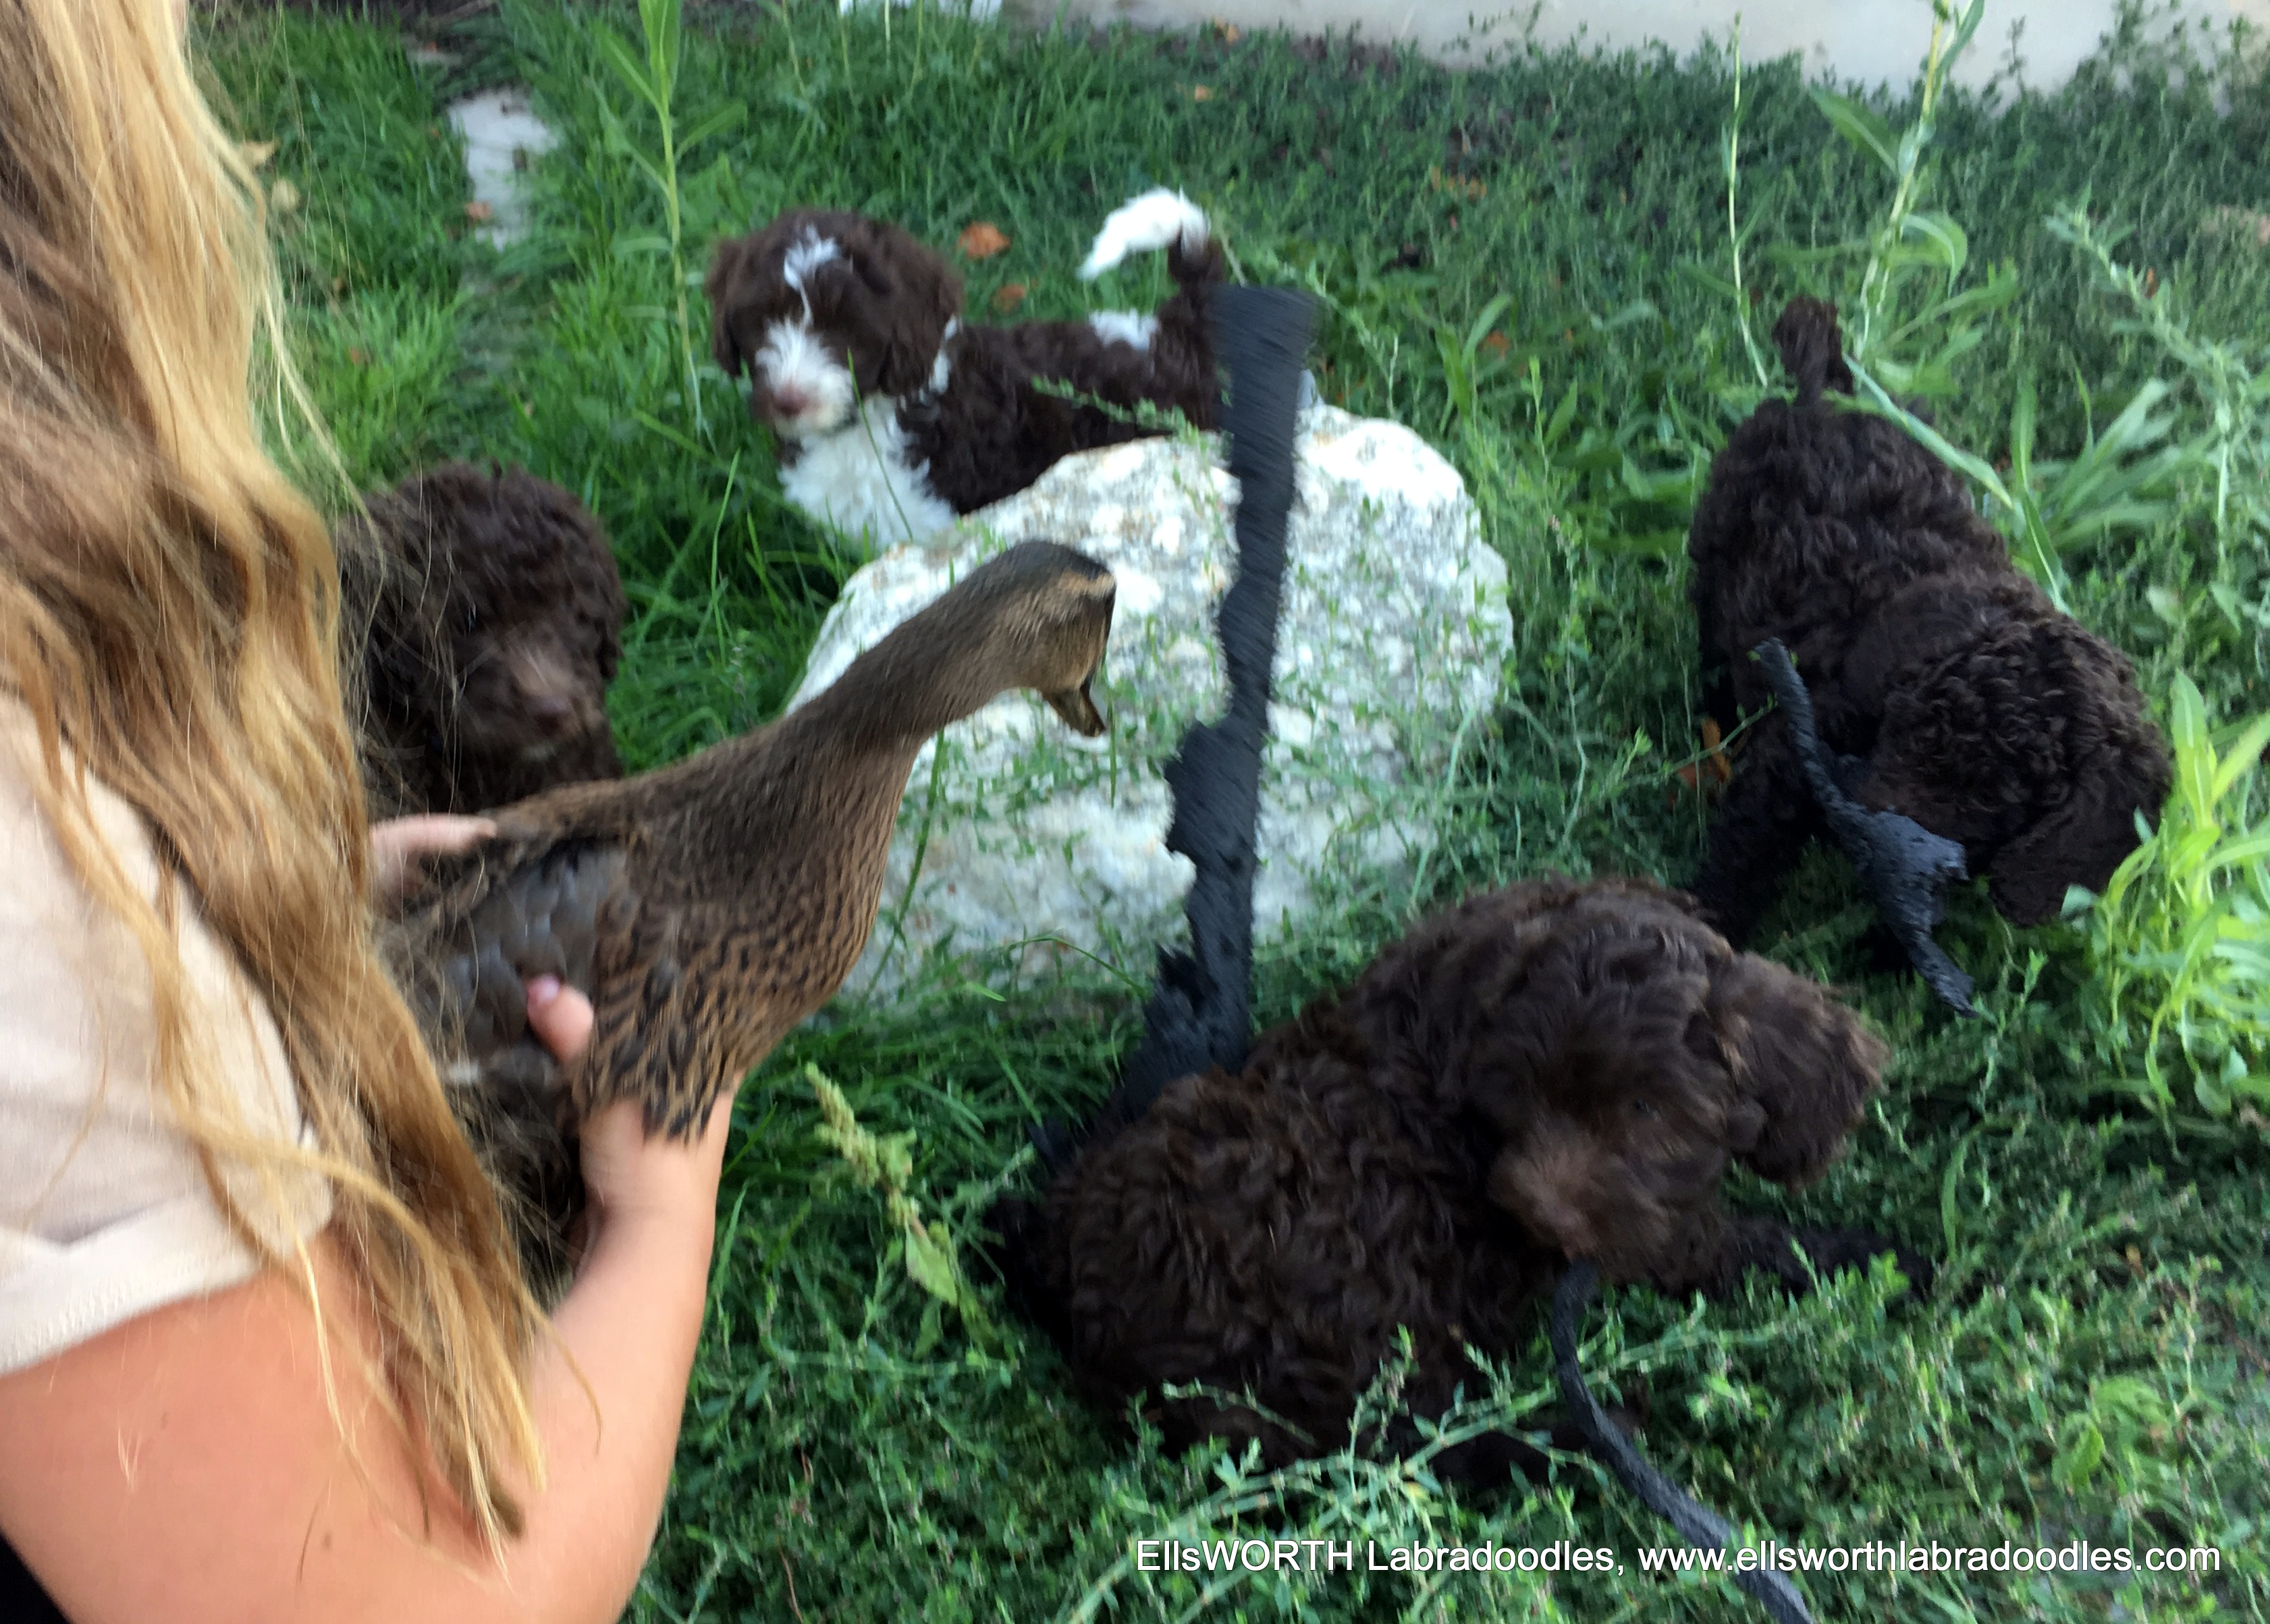 Emma holding the duck for the pups